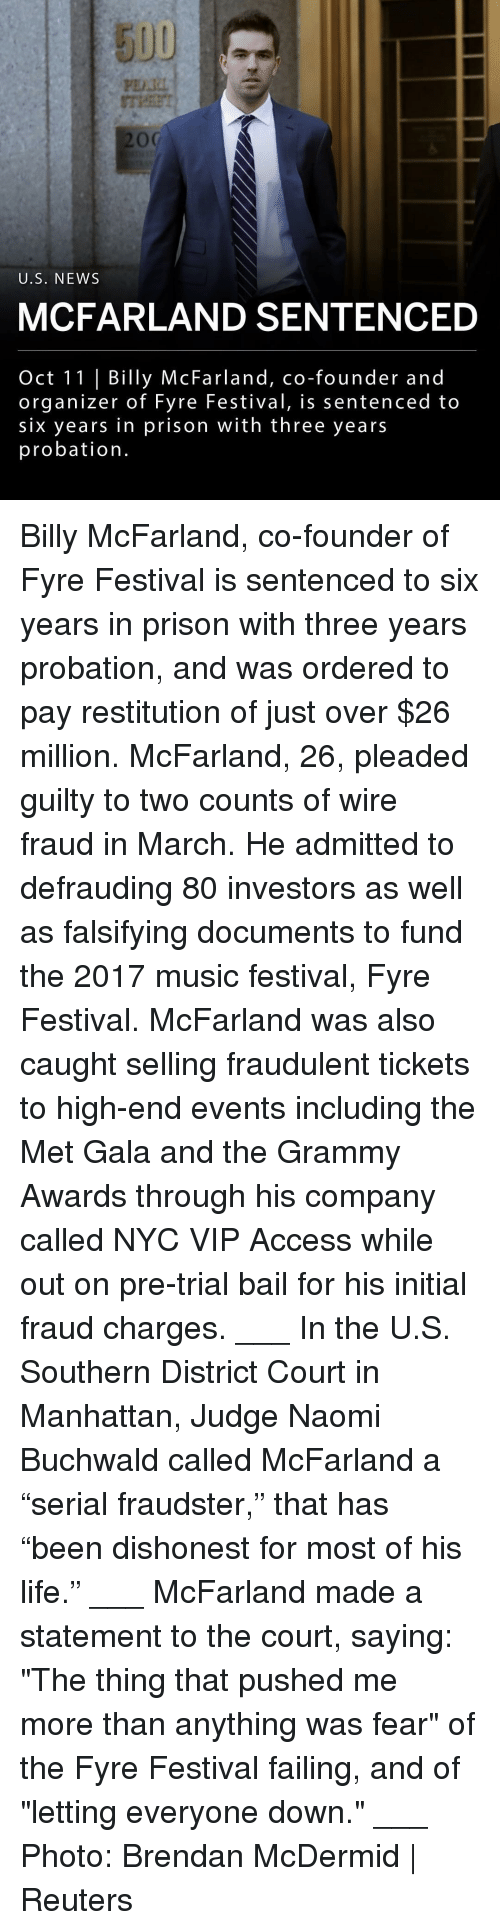 "Grammy Awards: 5UU  PDI  U.S. NEWs  MCFARLAND SENTENCED  Oct 11 | Billy McFarland, co-founder and  organizer of Fyre Festival, is sentenced to  six years in prison with three years  probation. Billy McFarland, co-founder of Fyre Festival is sentenced to six years in prison with three years probation, and was ordered to pay restitution of just over $26 million. McFarland, 26, pleaded guilty to two counts of wire fraud in March. He admitted to defrauding 80 investors as well as falsifying documents to fund the 2017 music festival, Fyre Festival. McFarland was also caught selling fraudulent tickets to high-end events including the Met Gala and the Grammy Awards through his company called NYC VIP Access while out on pre-trial bail for his initial fraud charges. ___ In the U.S. Southern District Court in Manhattan, Judge Naomi Buchwald called McFarland a ""serial fraudster,"" that has ""been dishonest for most of his life."" ___ McFarland made a statement to the court, saying: ""The thing that pushed me more than anything was fear"" of the Fyre Festival failing, and of ""letting everyone down."" ___ Photo: Brendan McDermid 